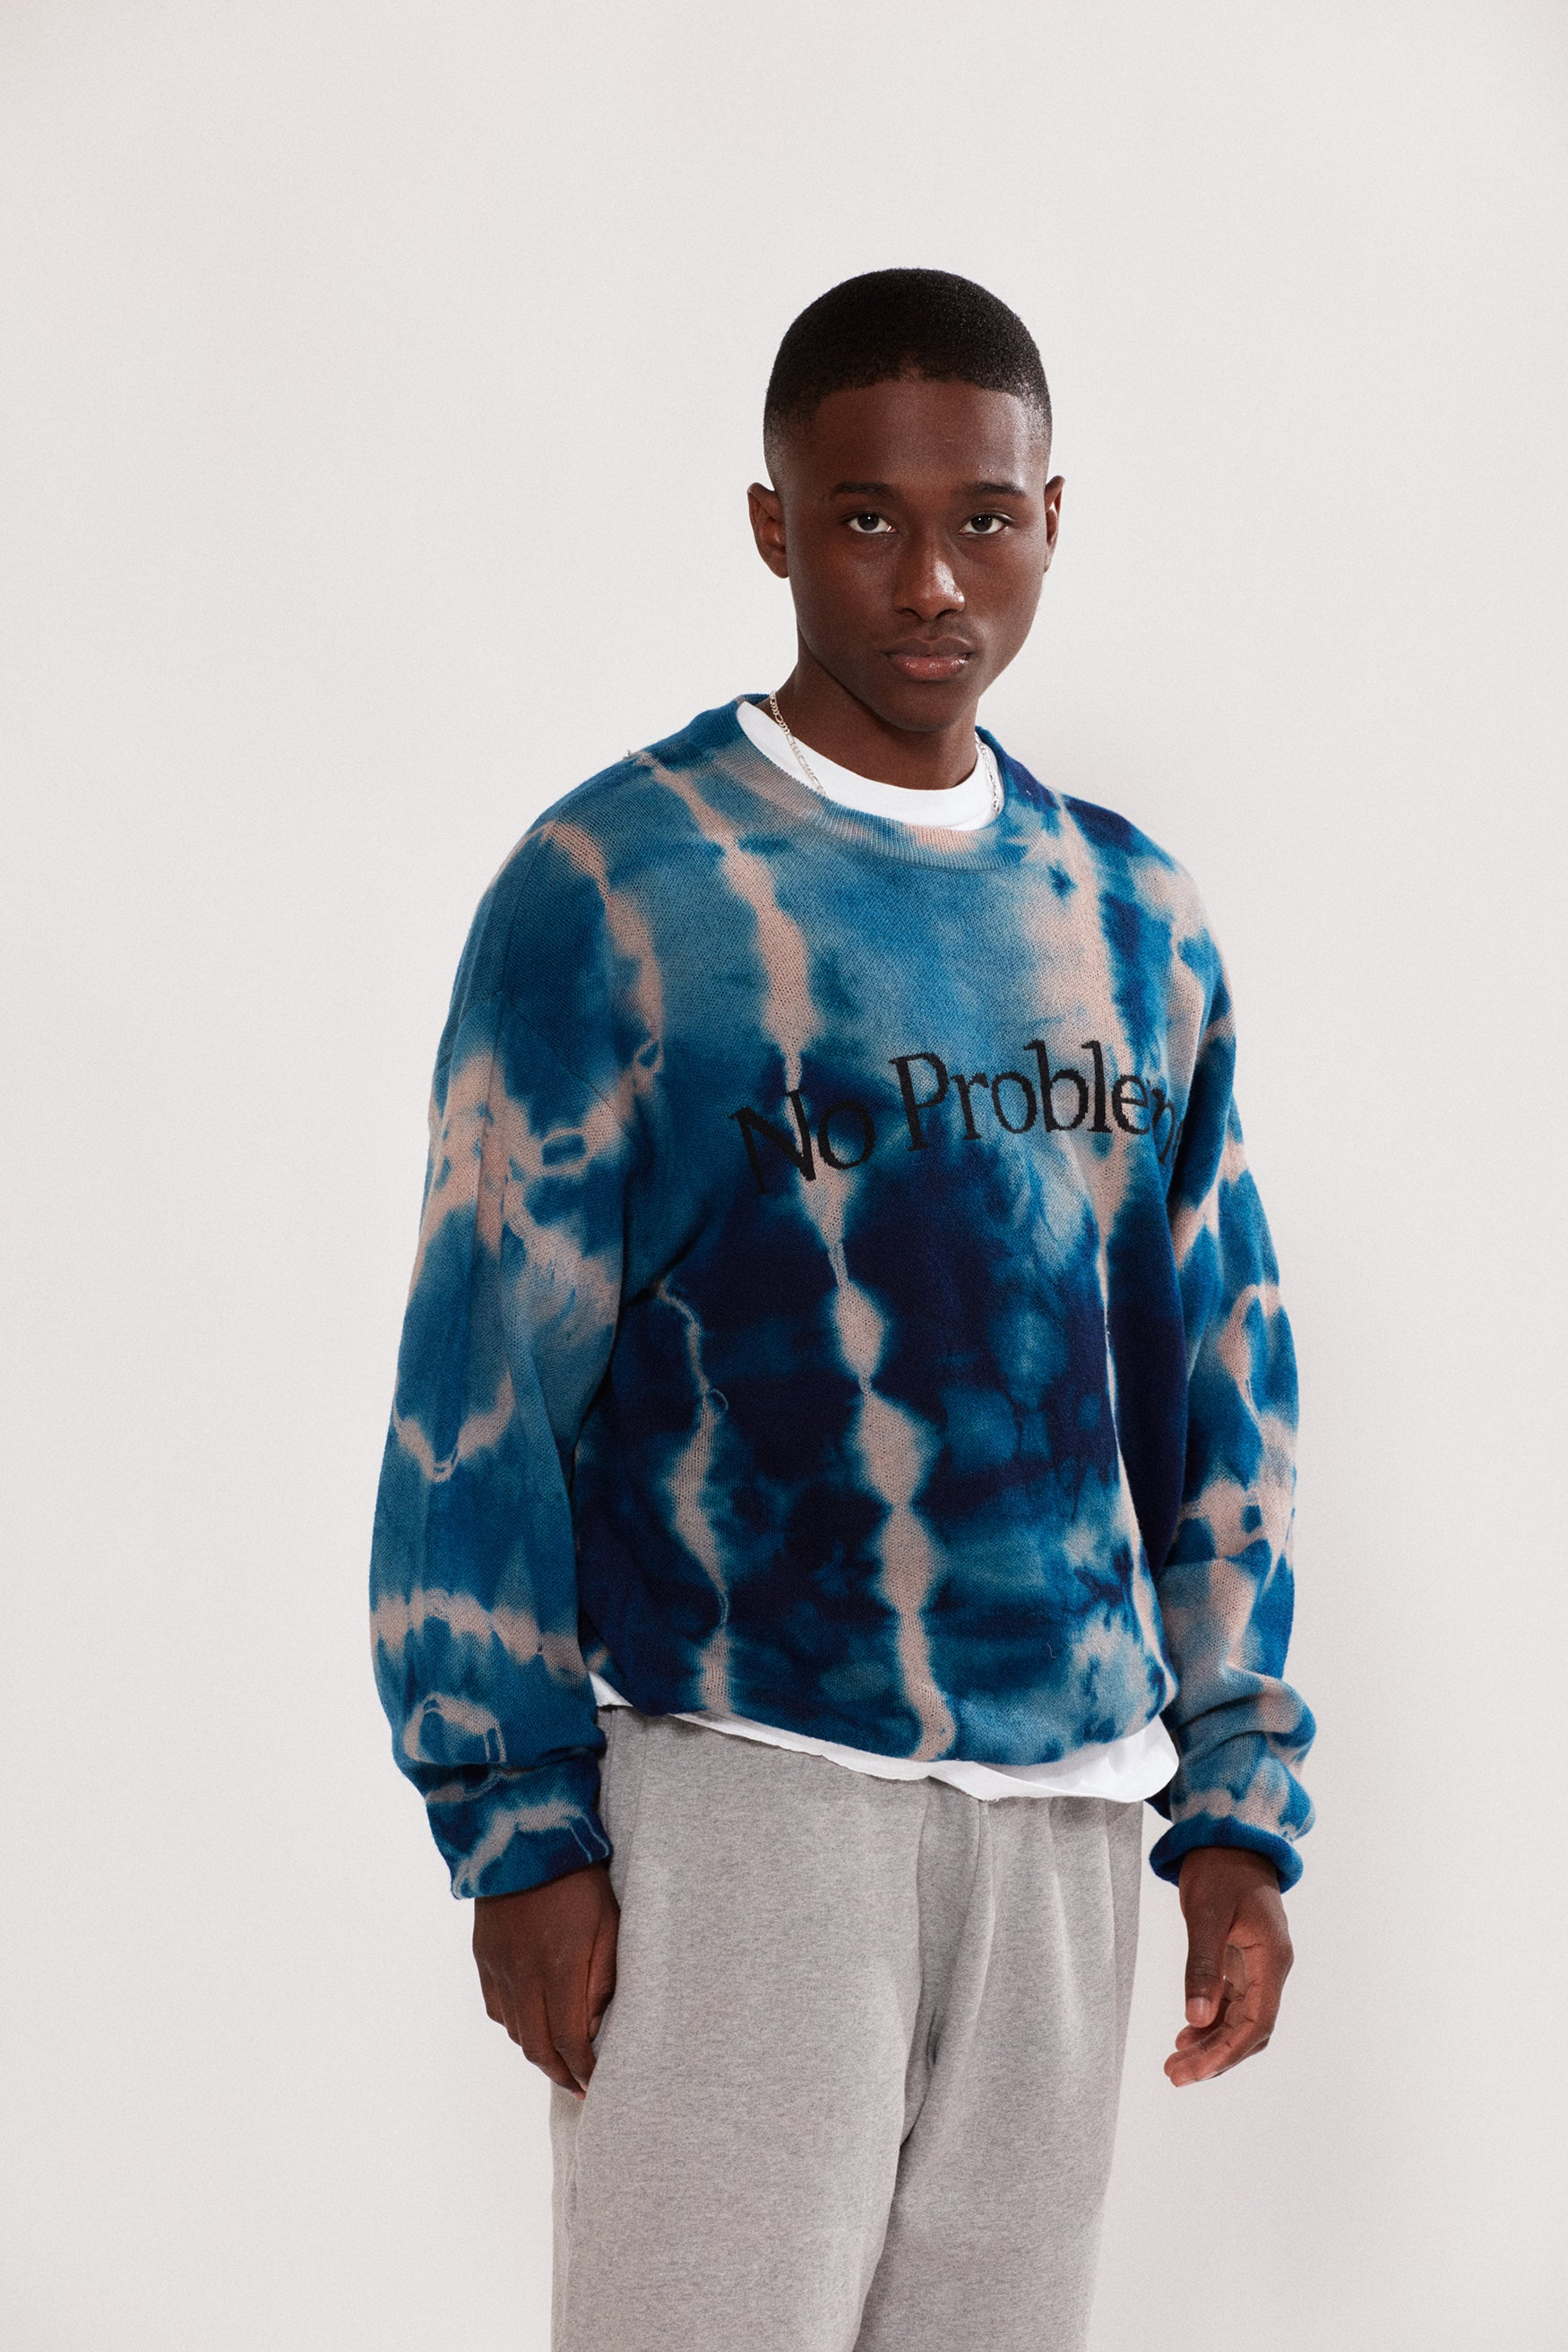 Load image into Gallery viewer, No Problemo Tie Dye Jumper